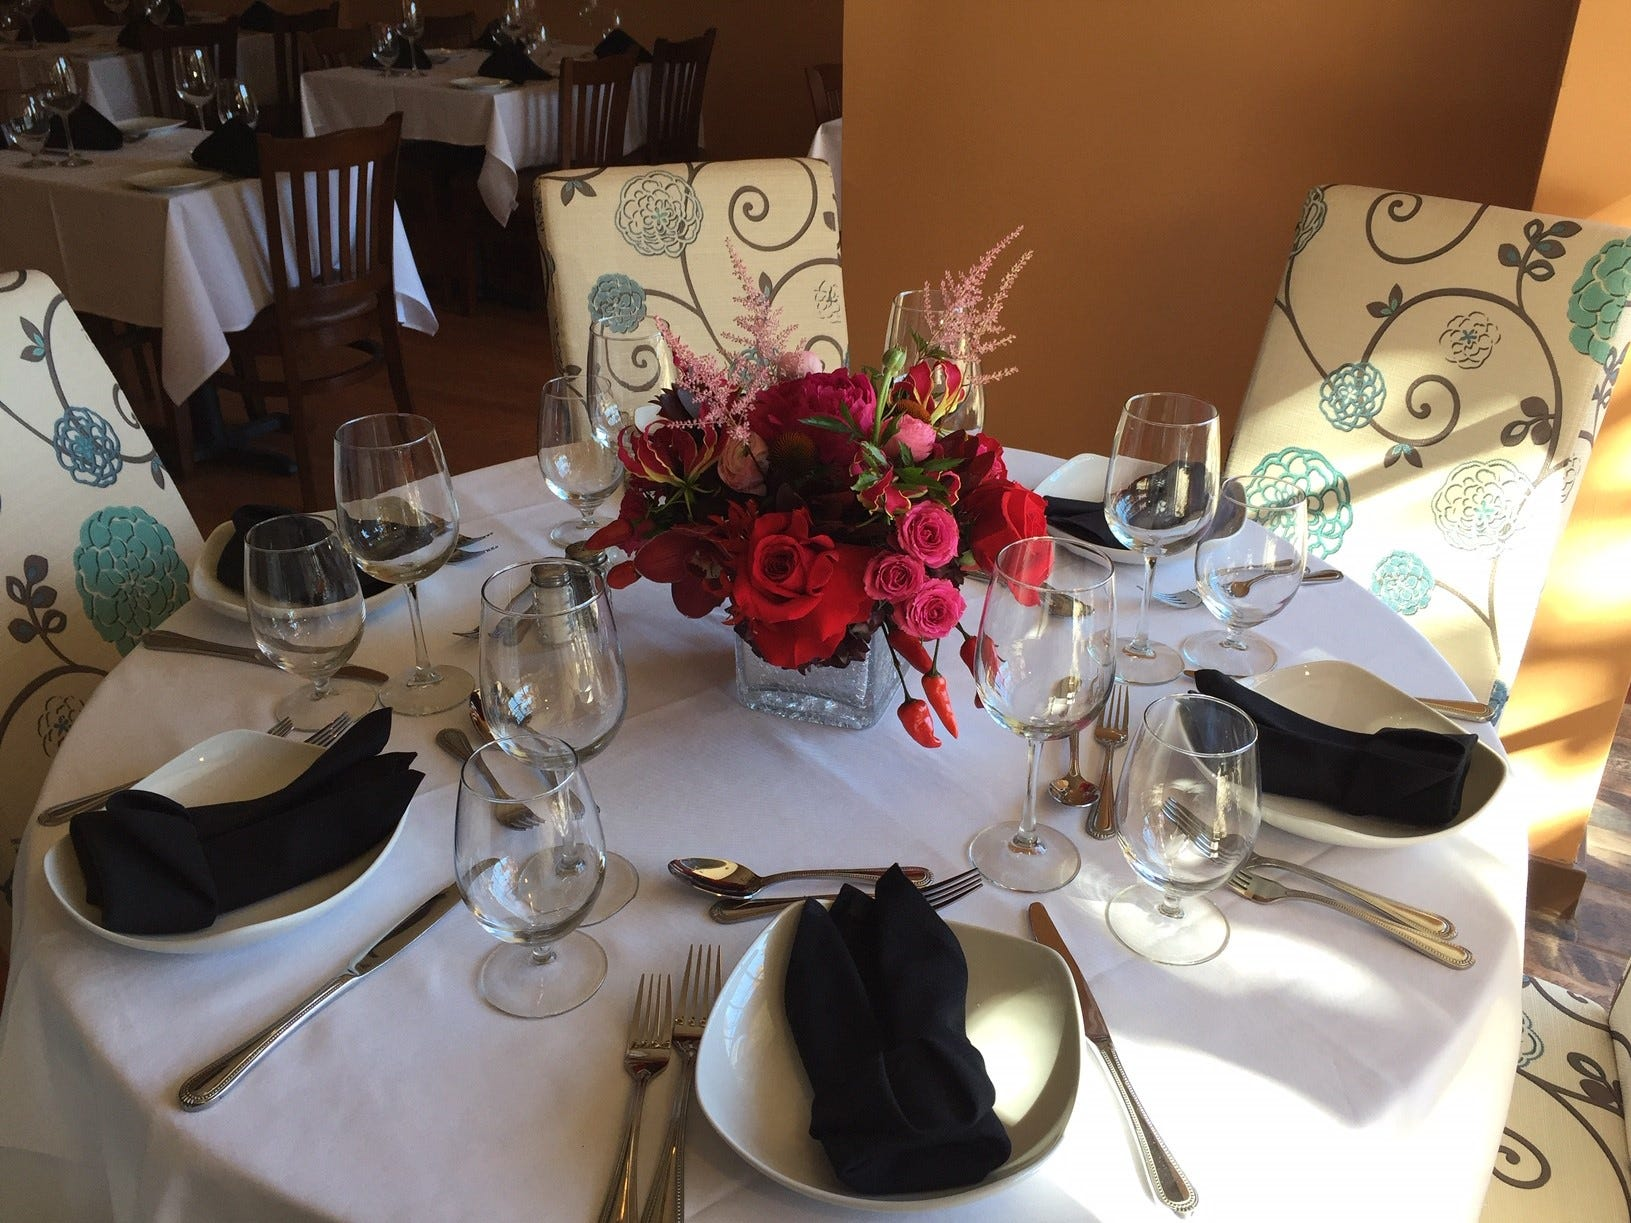 The chef's table at Verona Ristorante Italiano features a floral centerpiece by Michael Bruce Florist.